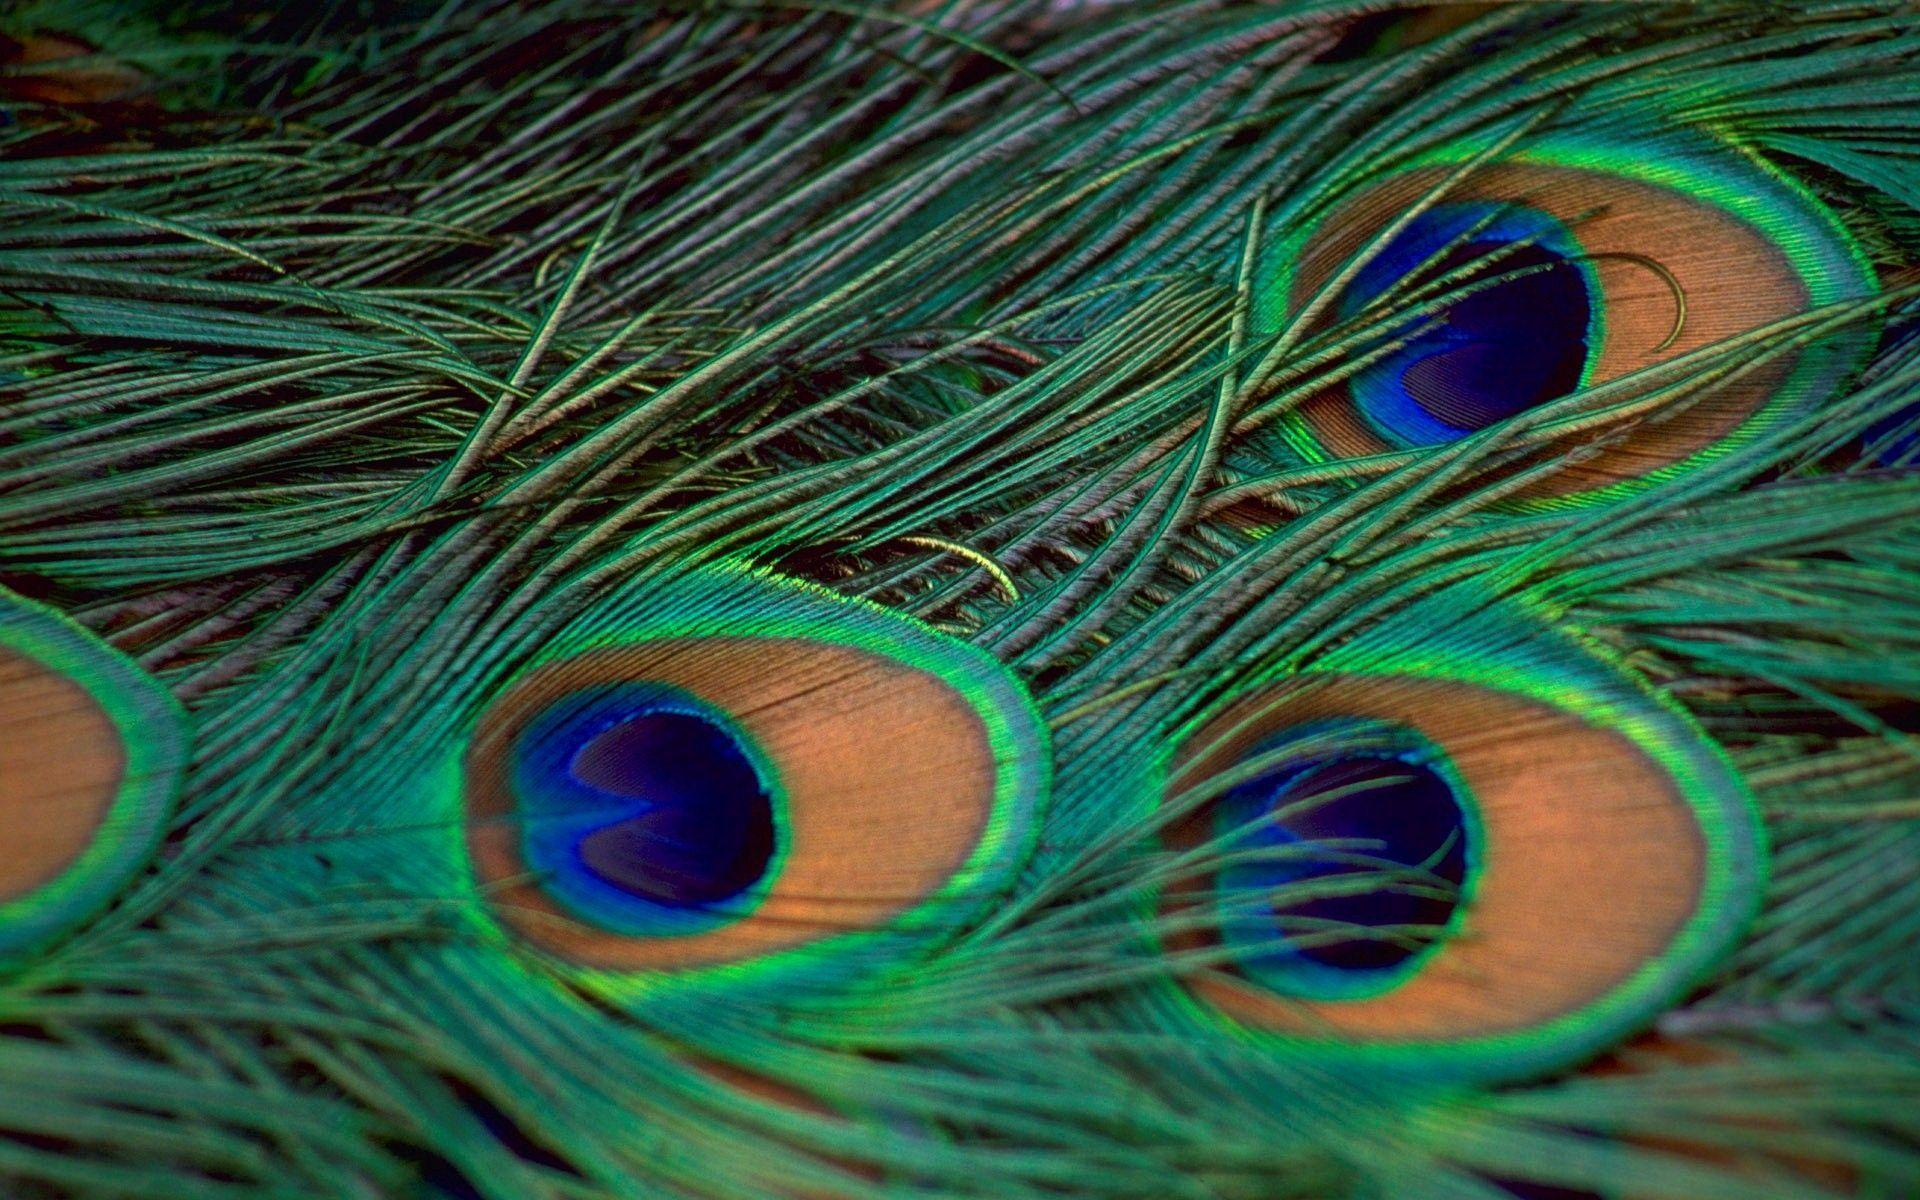 Wallpapers Of Peacock Feathers HD 2017 1920x1200